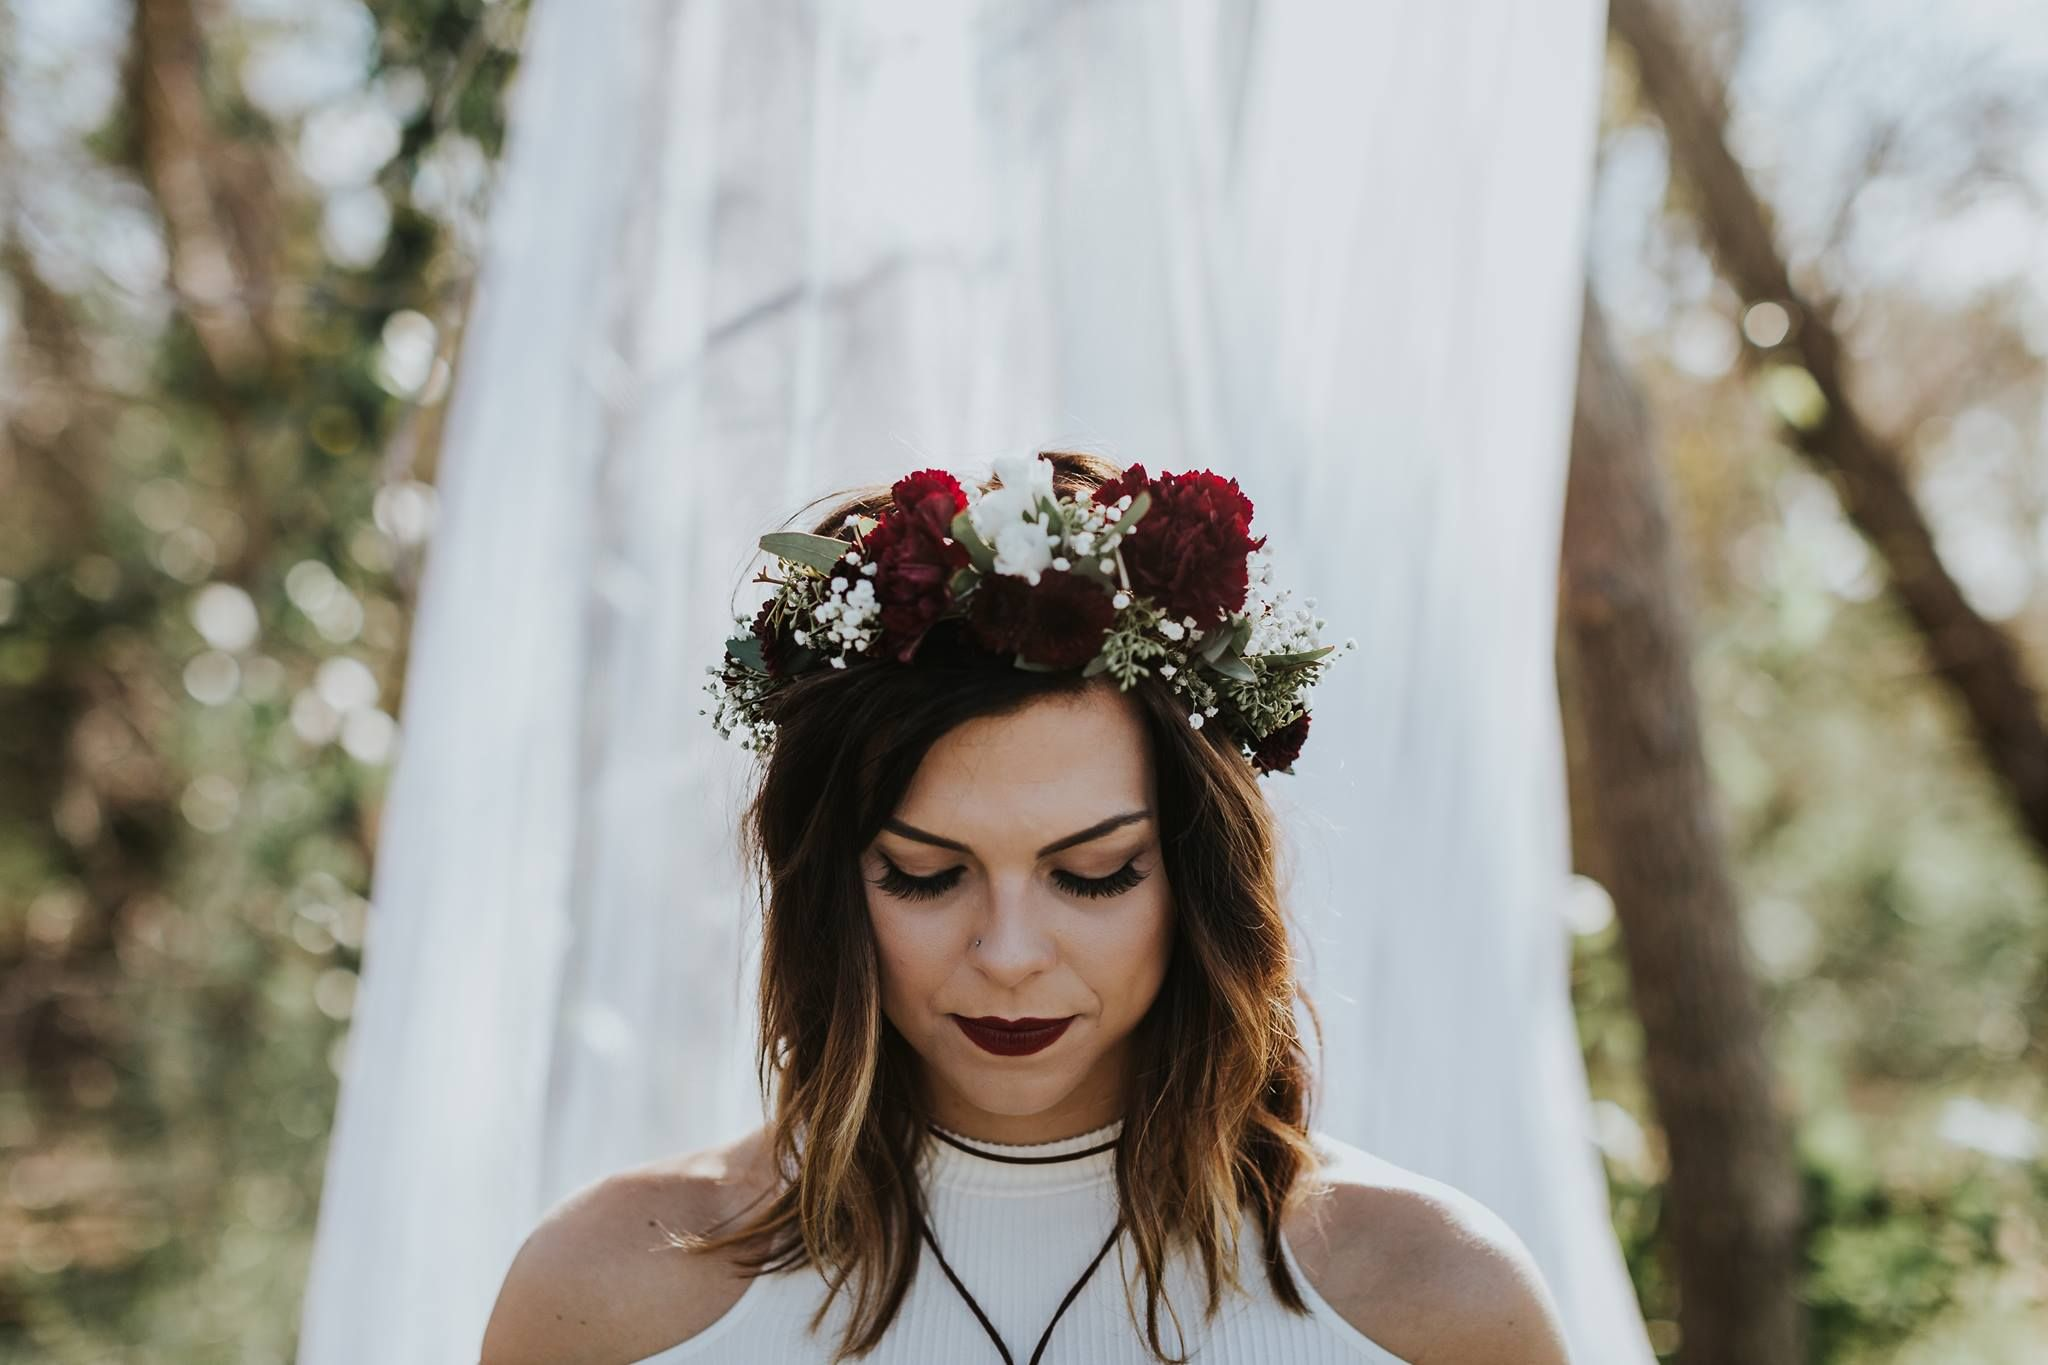 Bohemian flower crown photoshoot just dreamy photography ideas bohemian flower crown photoshoot just dreamy izmirmasajfo